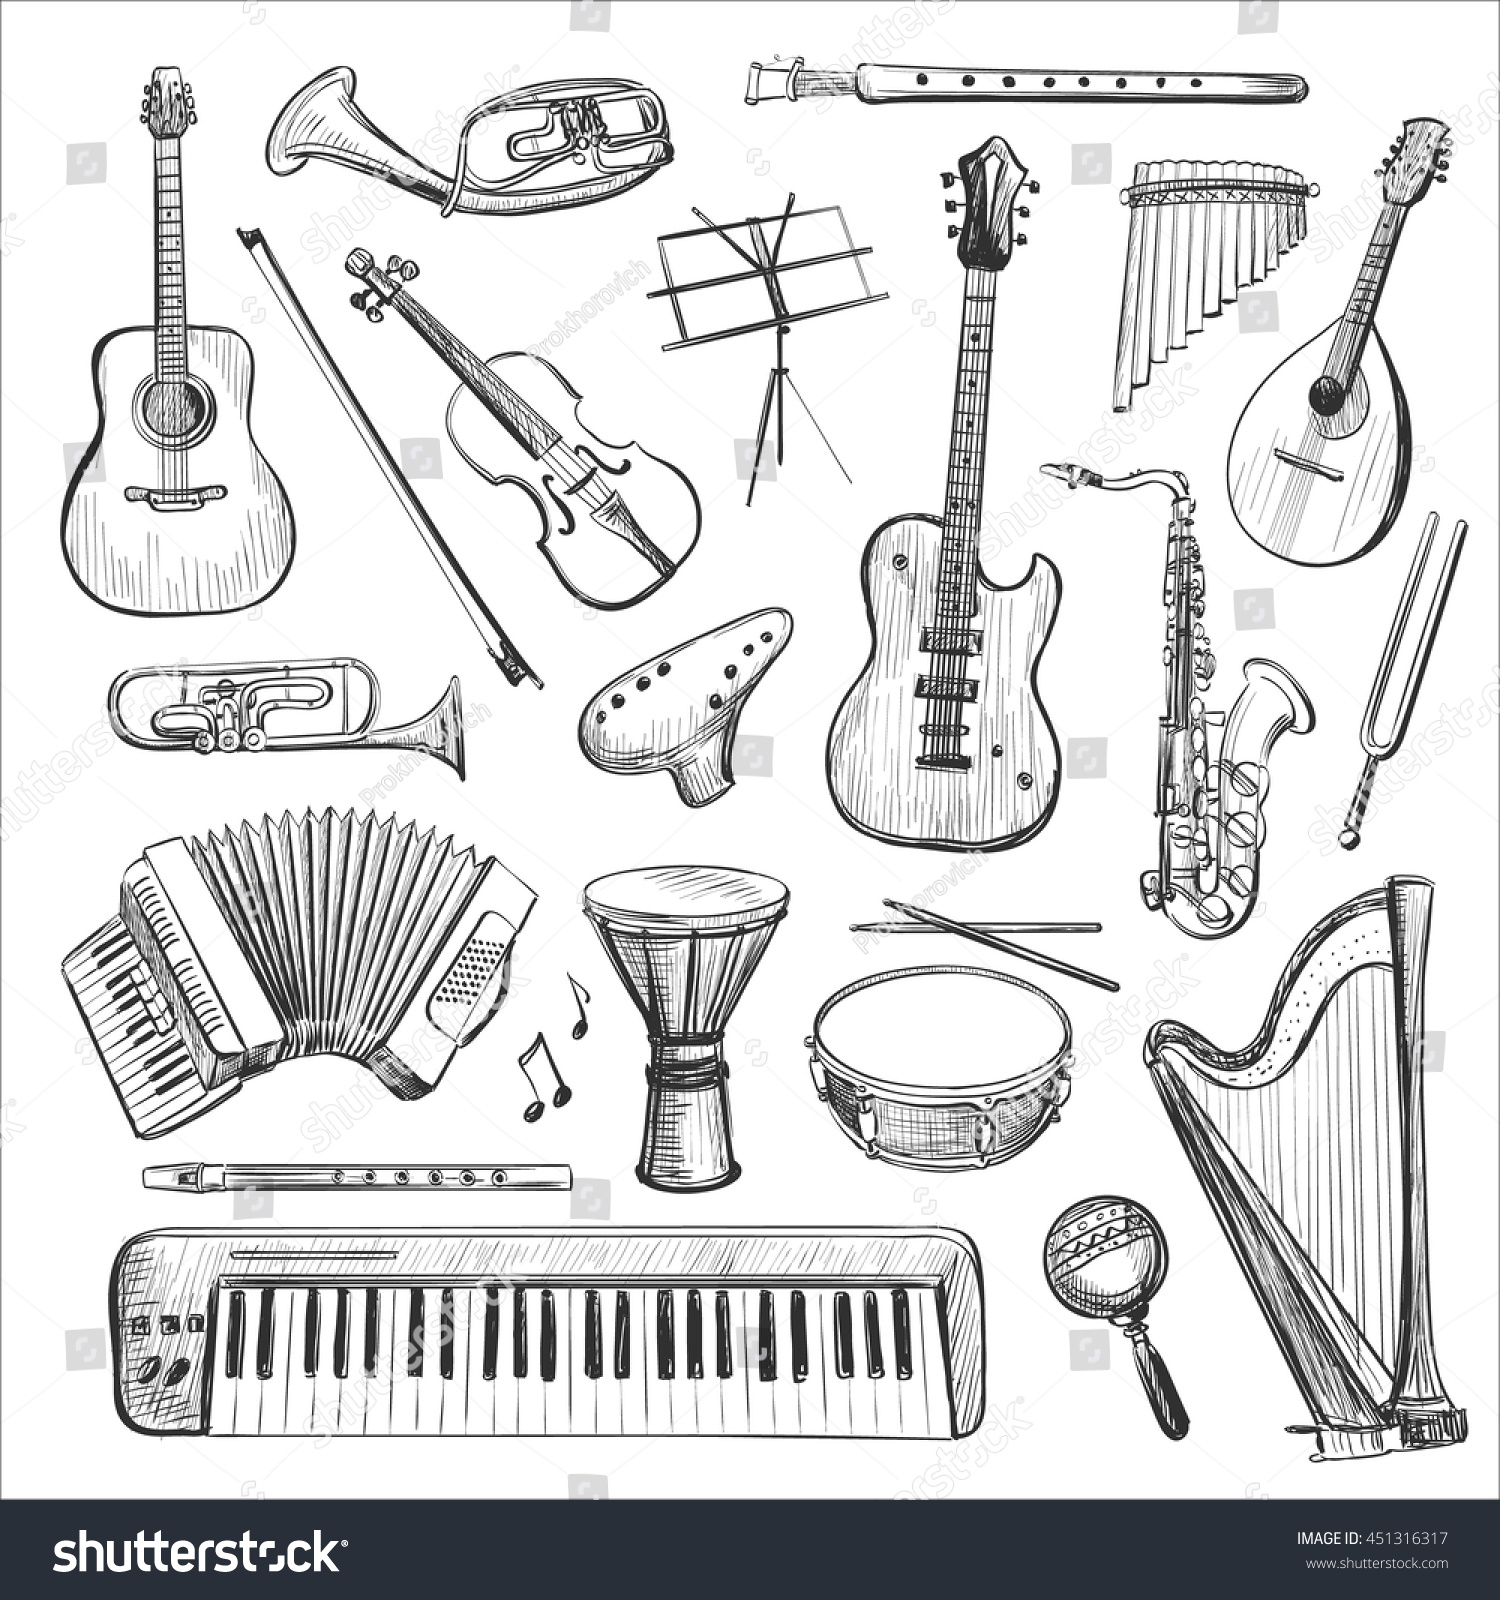 Vector set of sketches of musical instruments isolated pictures on a white background